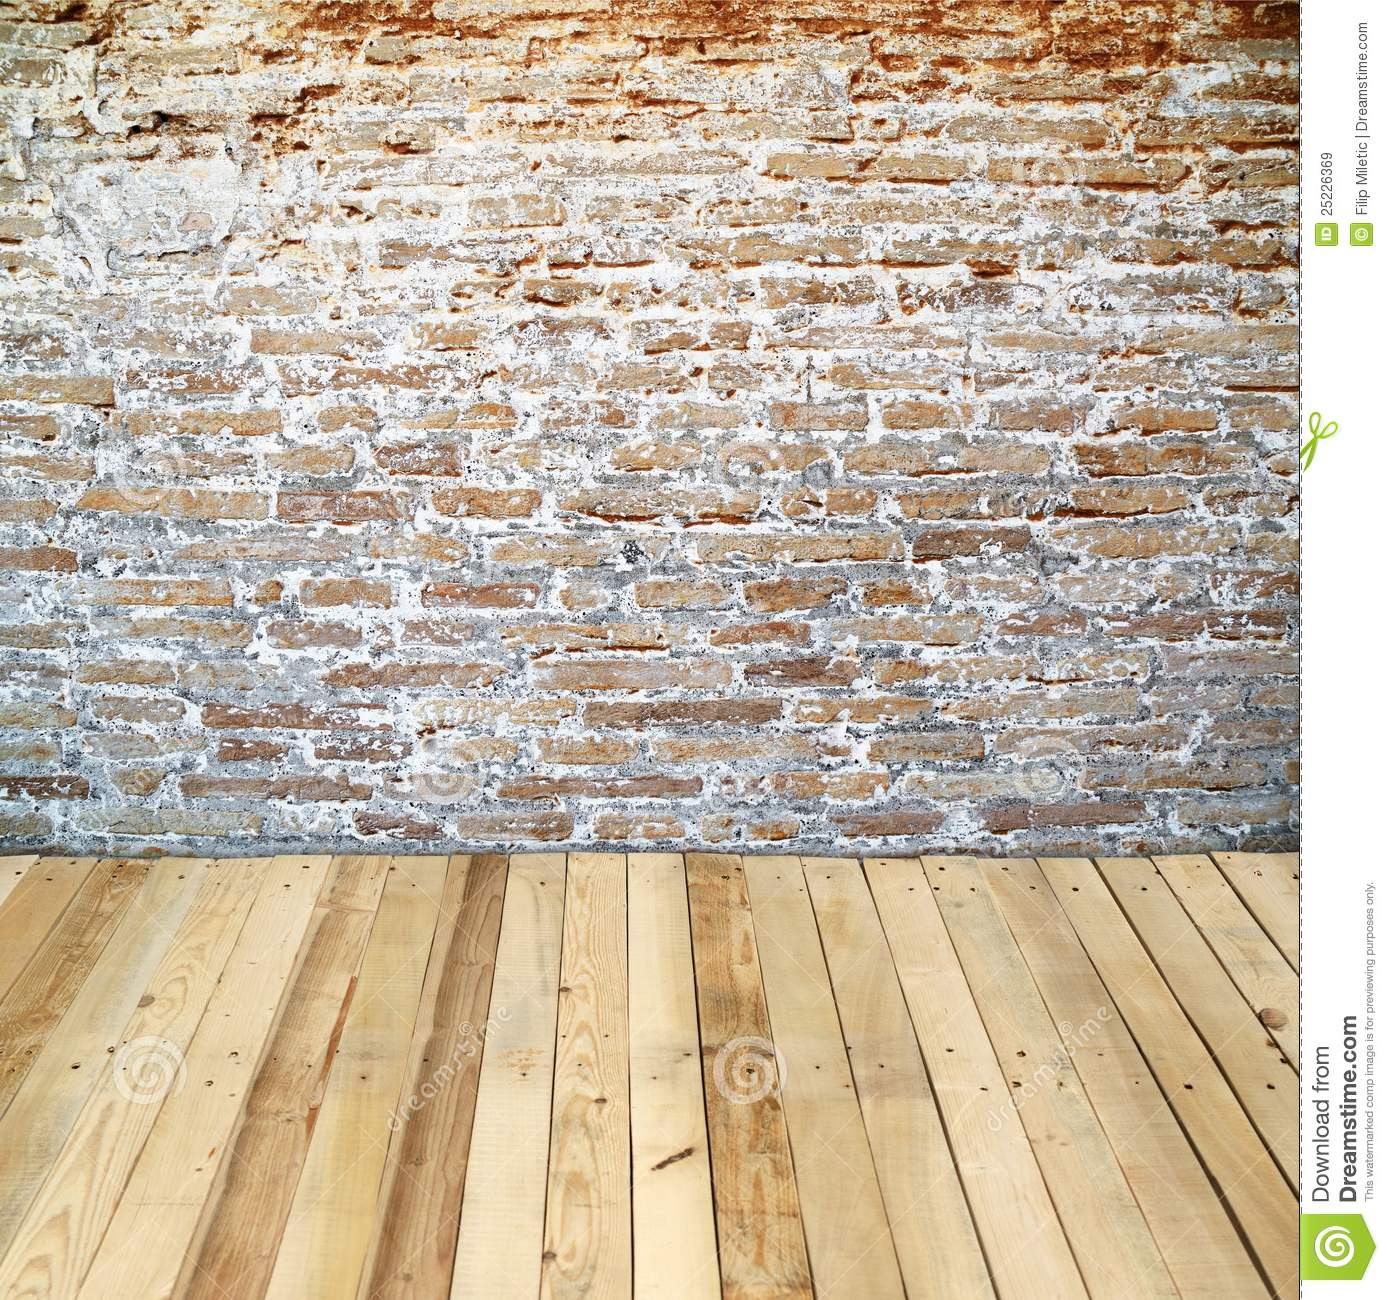 Z Brick Flooring : Brick wall with wooden floor stock image of timber